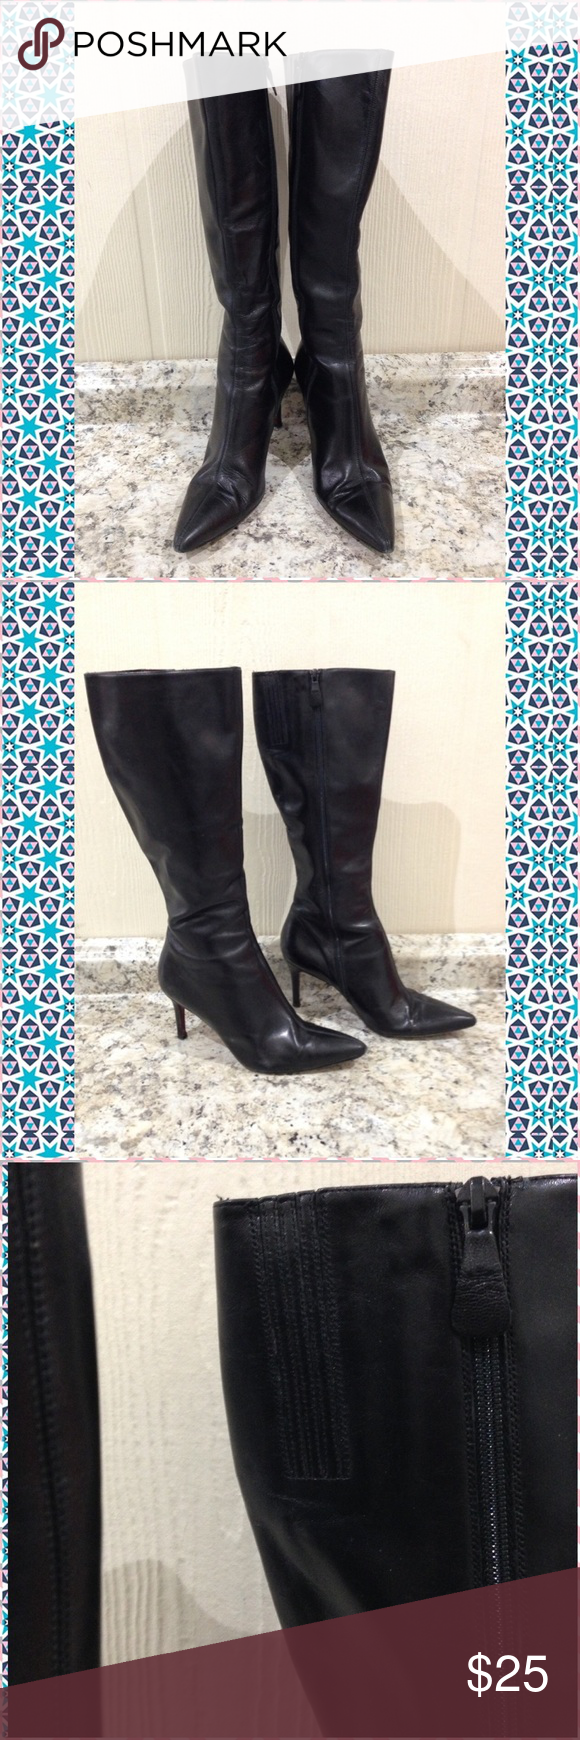 """🌴NEW LISTING🌴 Ann Taylor Stilleto Boots Black. Red bottom. Leather upper. Knee-hi. Stilettos. Stretch at calf.  Inside is peeling. Show other signs of wear (scratches and rubbing). 3"""" heels. Size 8 1/2. (2/21) Ann Taylor Shoes Heeled Boots"""